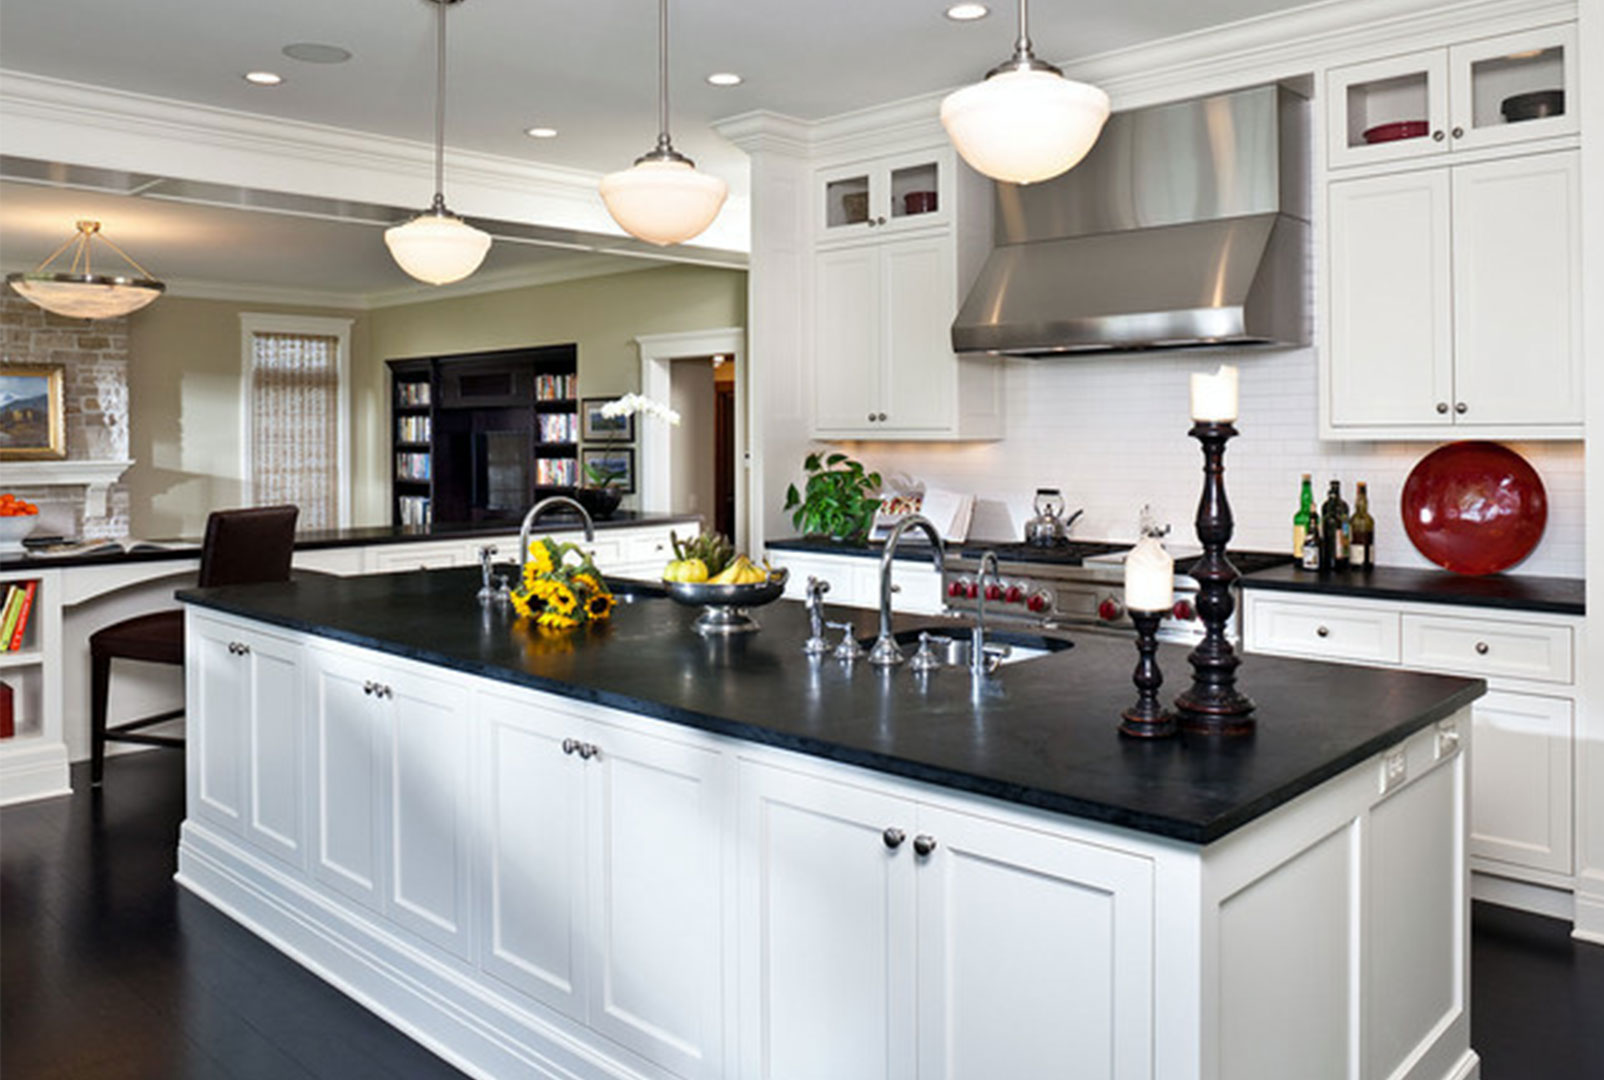 Best Kitchen Designs Images Take Your Kitchen To Next Level With These 28 Modern